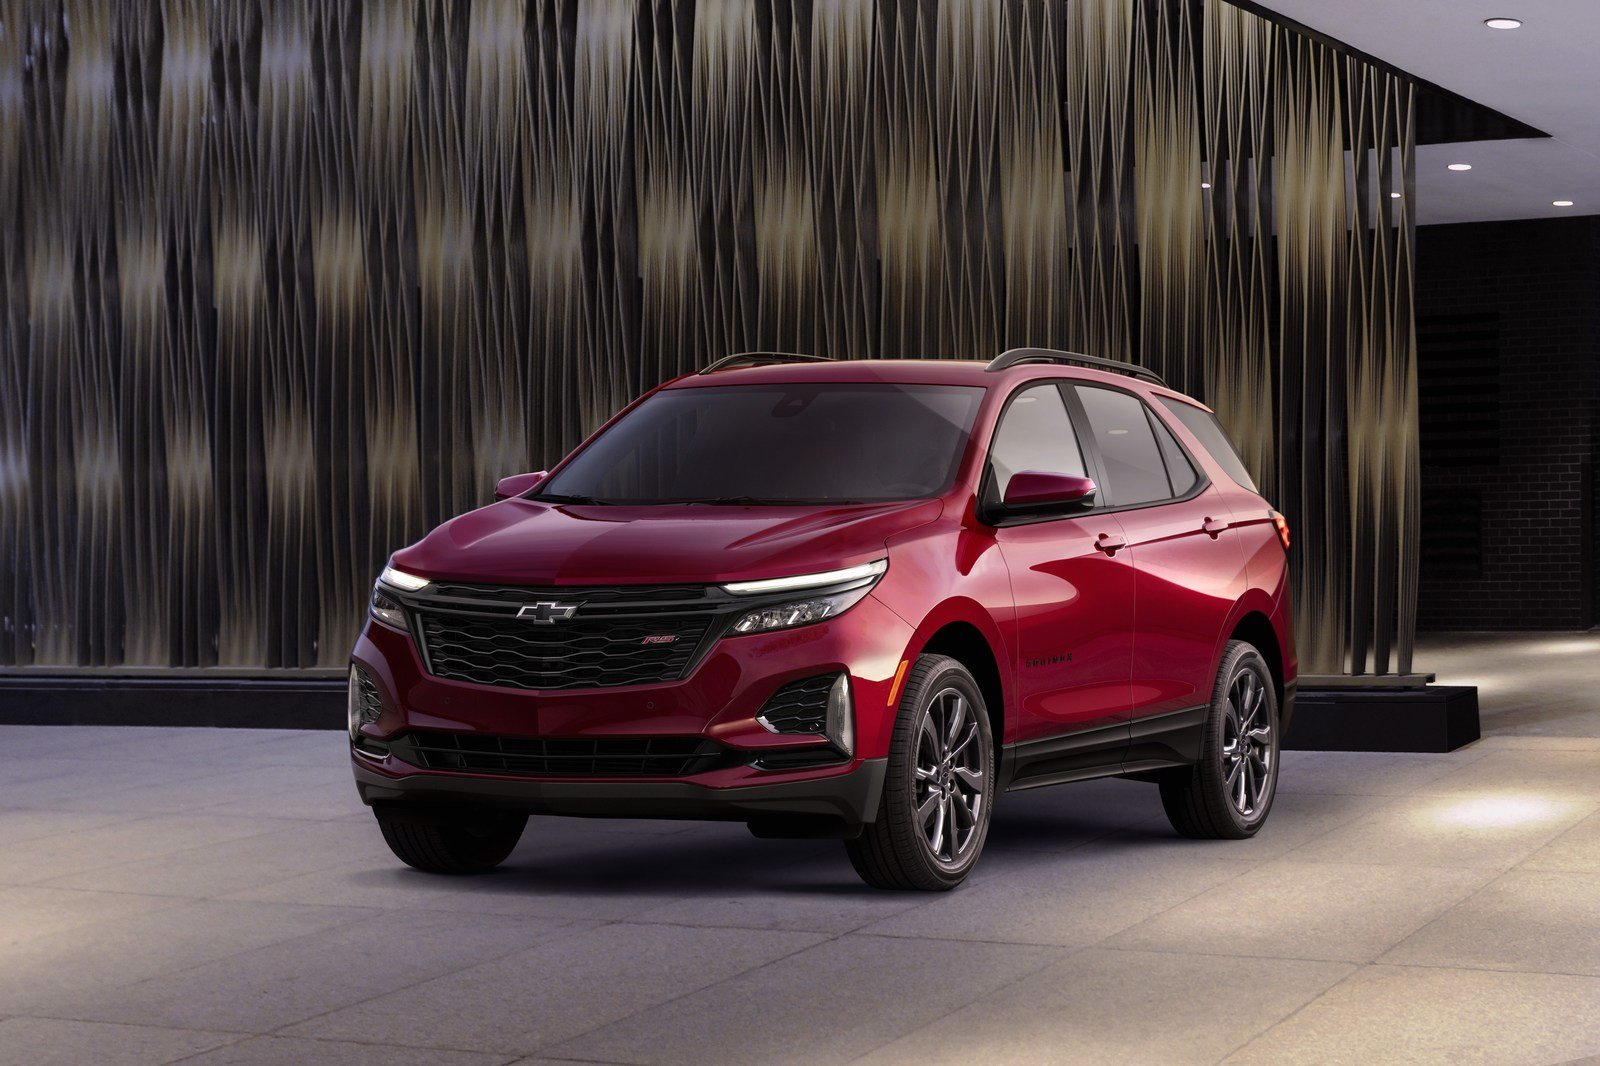 2021 Chevrolet Equinox - Mildly Refreshed And Cooler Than Ever 2021 Chevrolet Equinox Premier Msrp, Options, Pictures